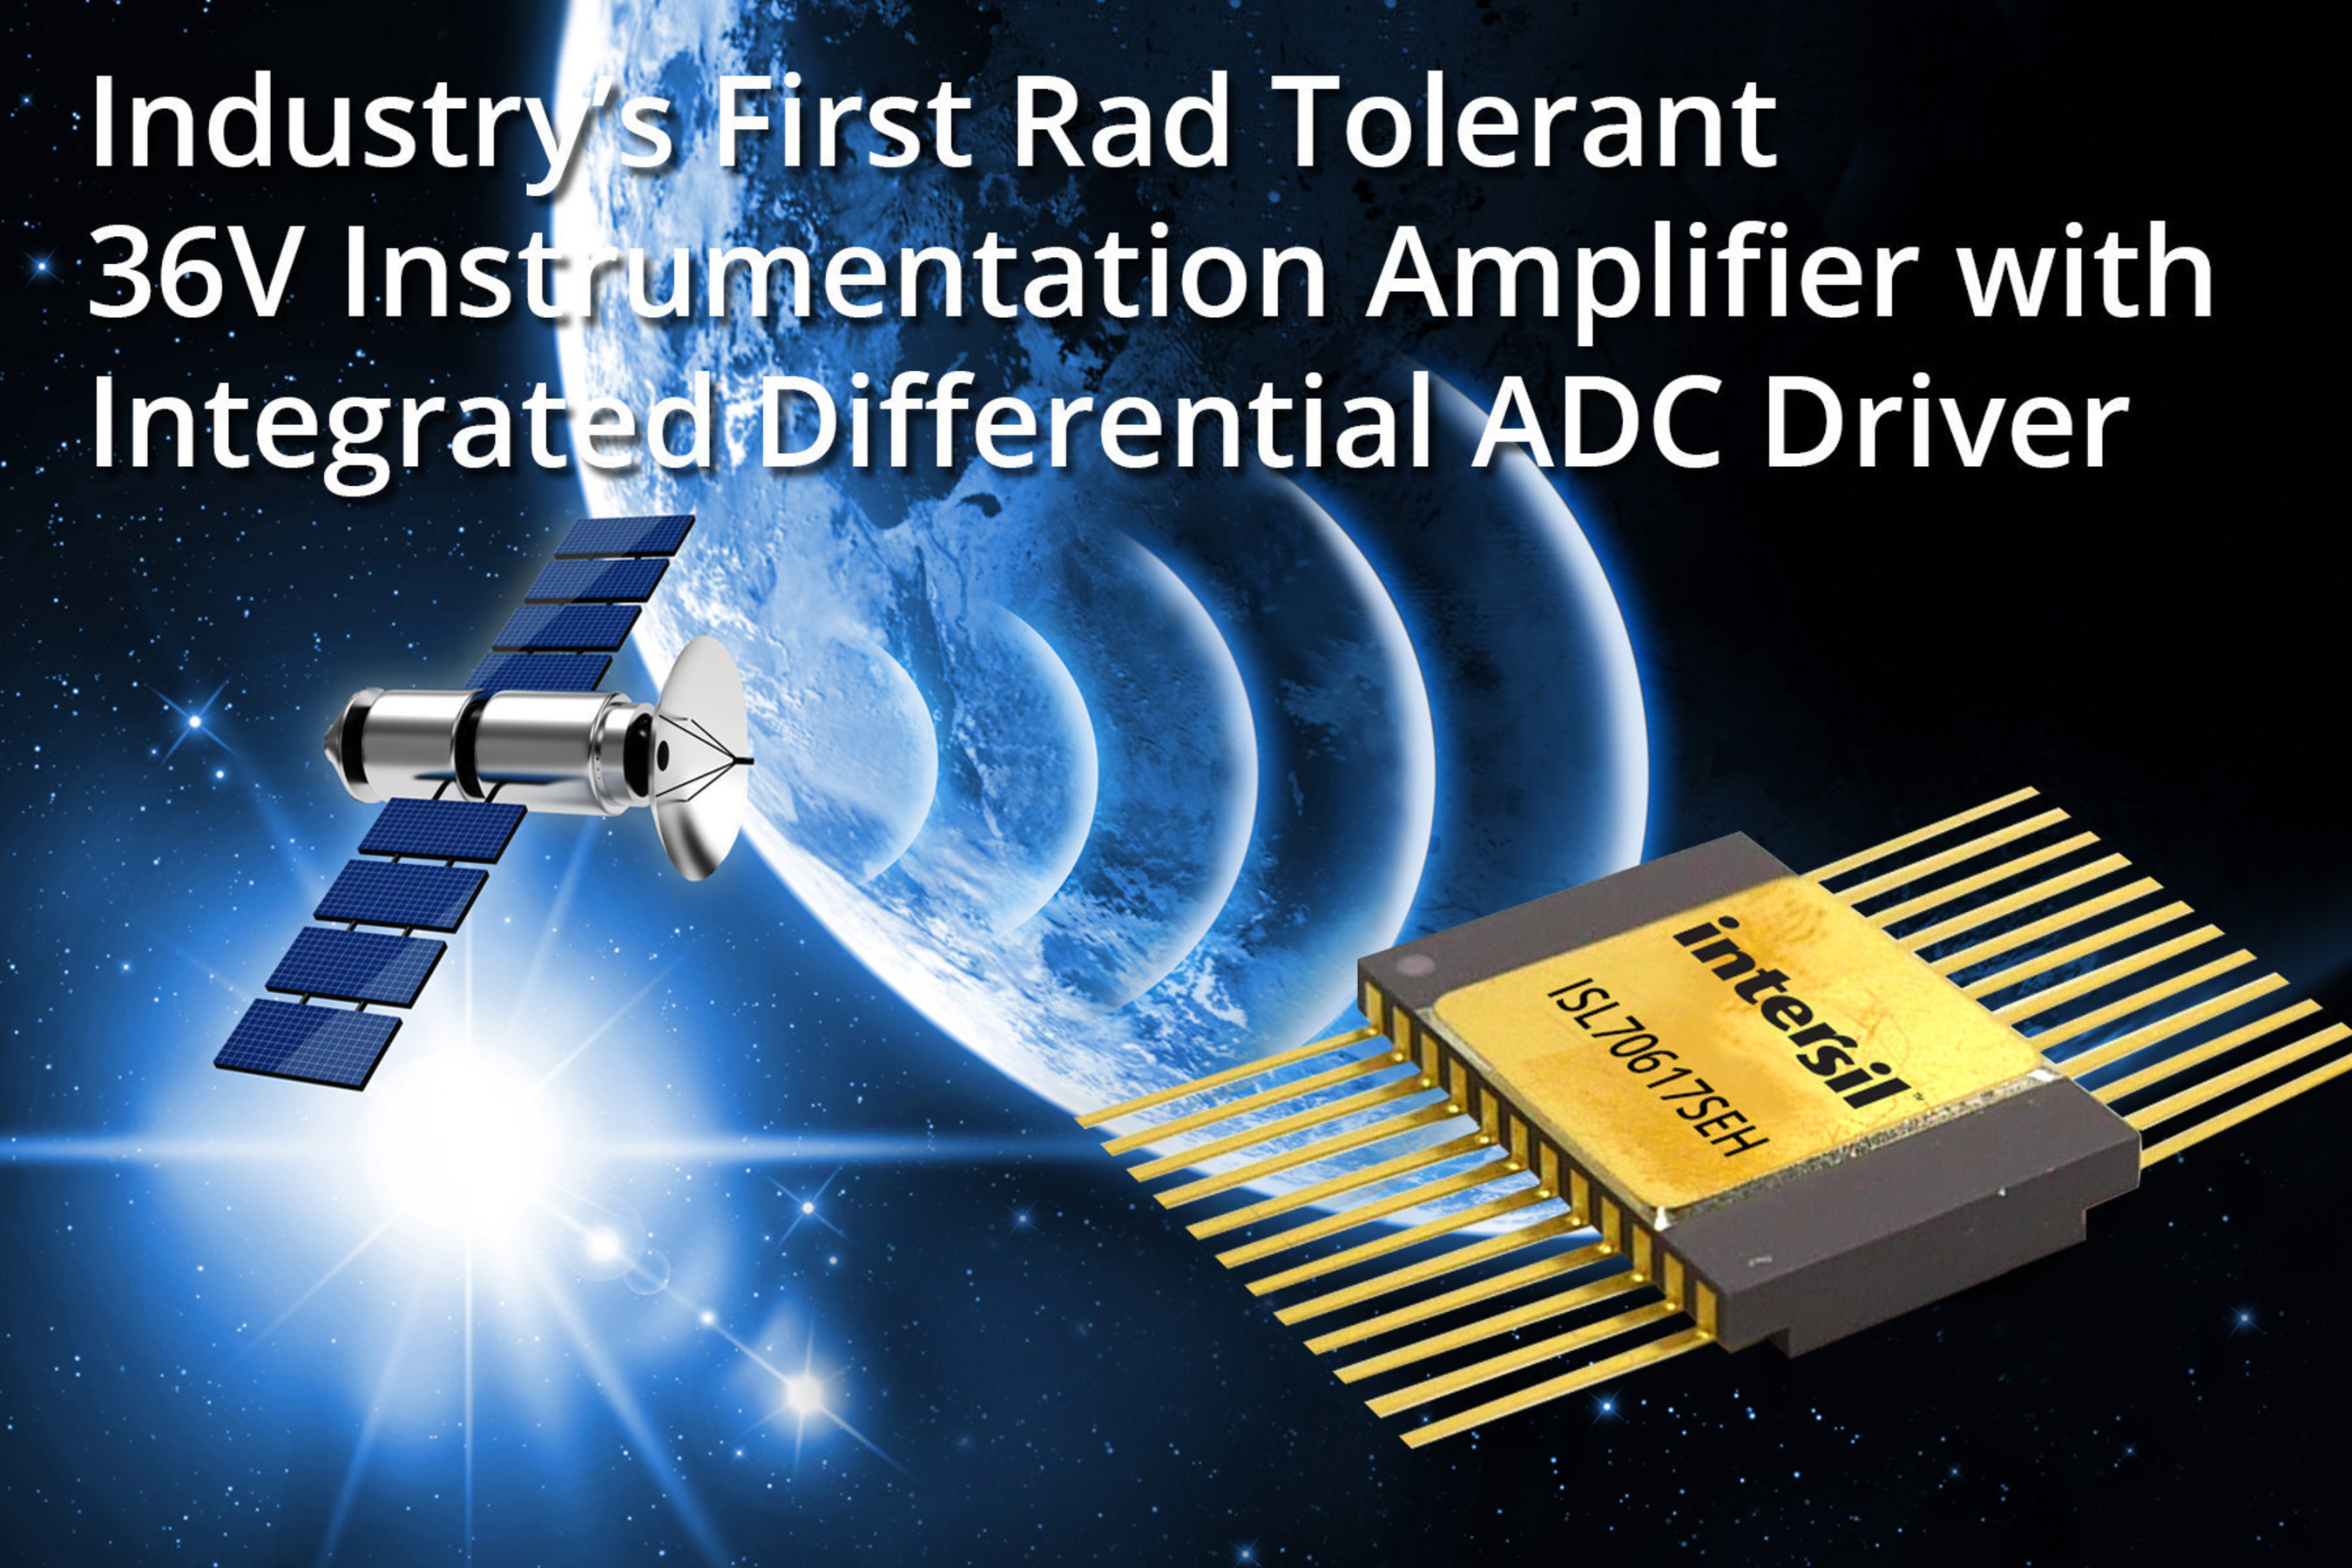 Intersil Announces Industry's First Rad Tolerant 36V Instrumentation Amplifier with Integrated Differential ADC Driver